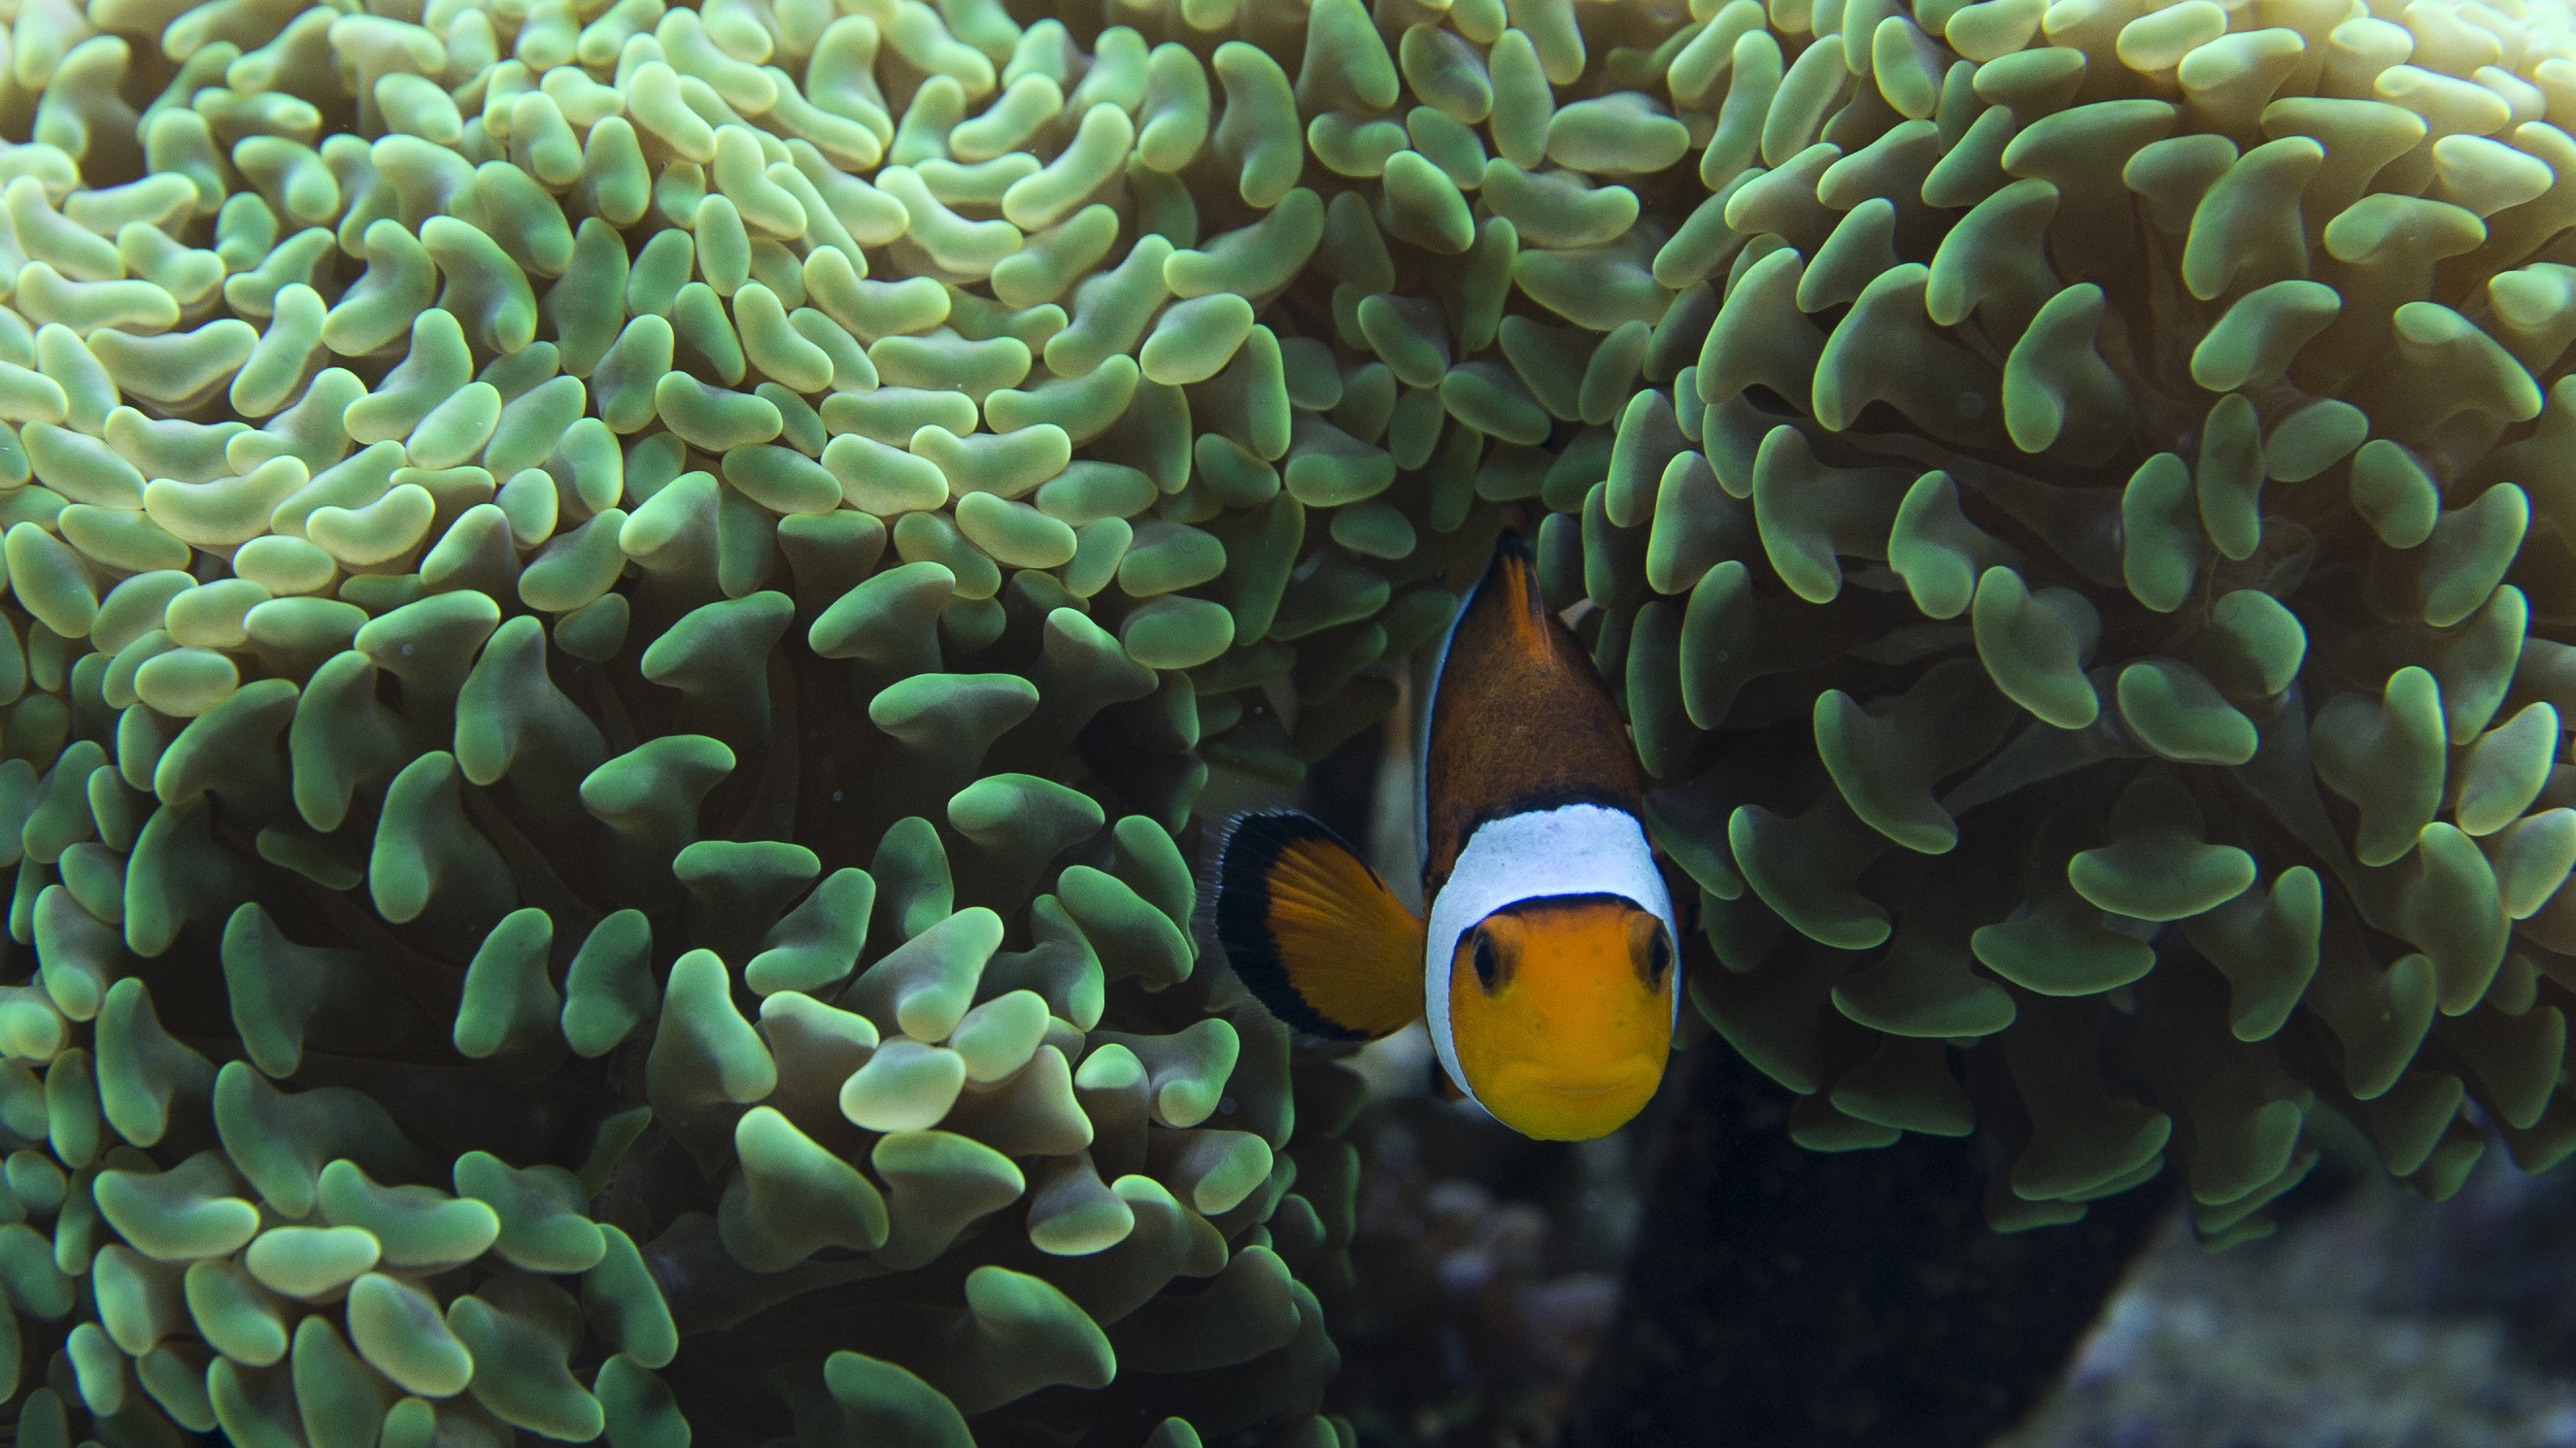 """A common clownfish-Amphiprion percular- in an aquarium is photographed during a media preview of 'Coral Reef - Secret Cities of the Sea' exhibition at the Natural History museum in London, Wednesday, March, 25, 2015. The museum's new show plunges into the underwater world, featuring a """"virtual dive"""" that provides a 180-degree view of five coral reefs controlled by a joystick, including one vista with a manta ray in Komodo Island, Indonesia.  (AP Photo/Alastair Grant)"""